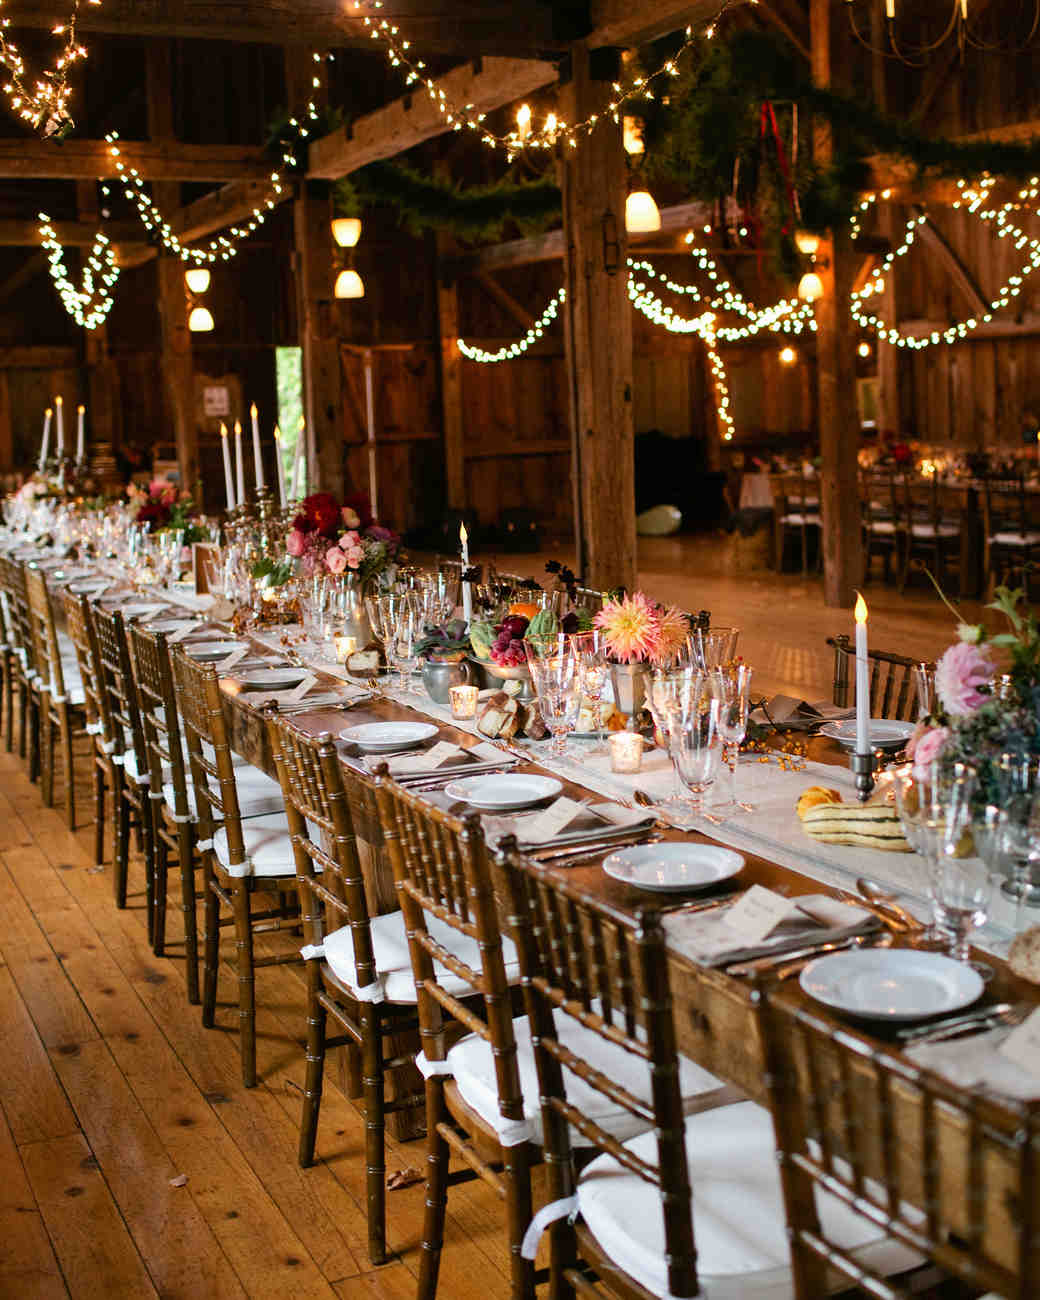 Rustic Summer Barn Weddings: A Rustic Fall Barn Wedding In Maine